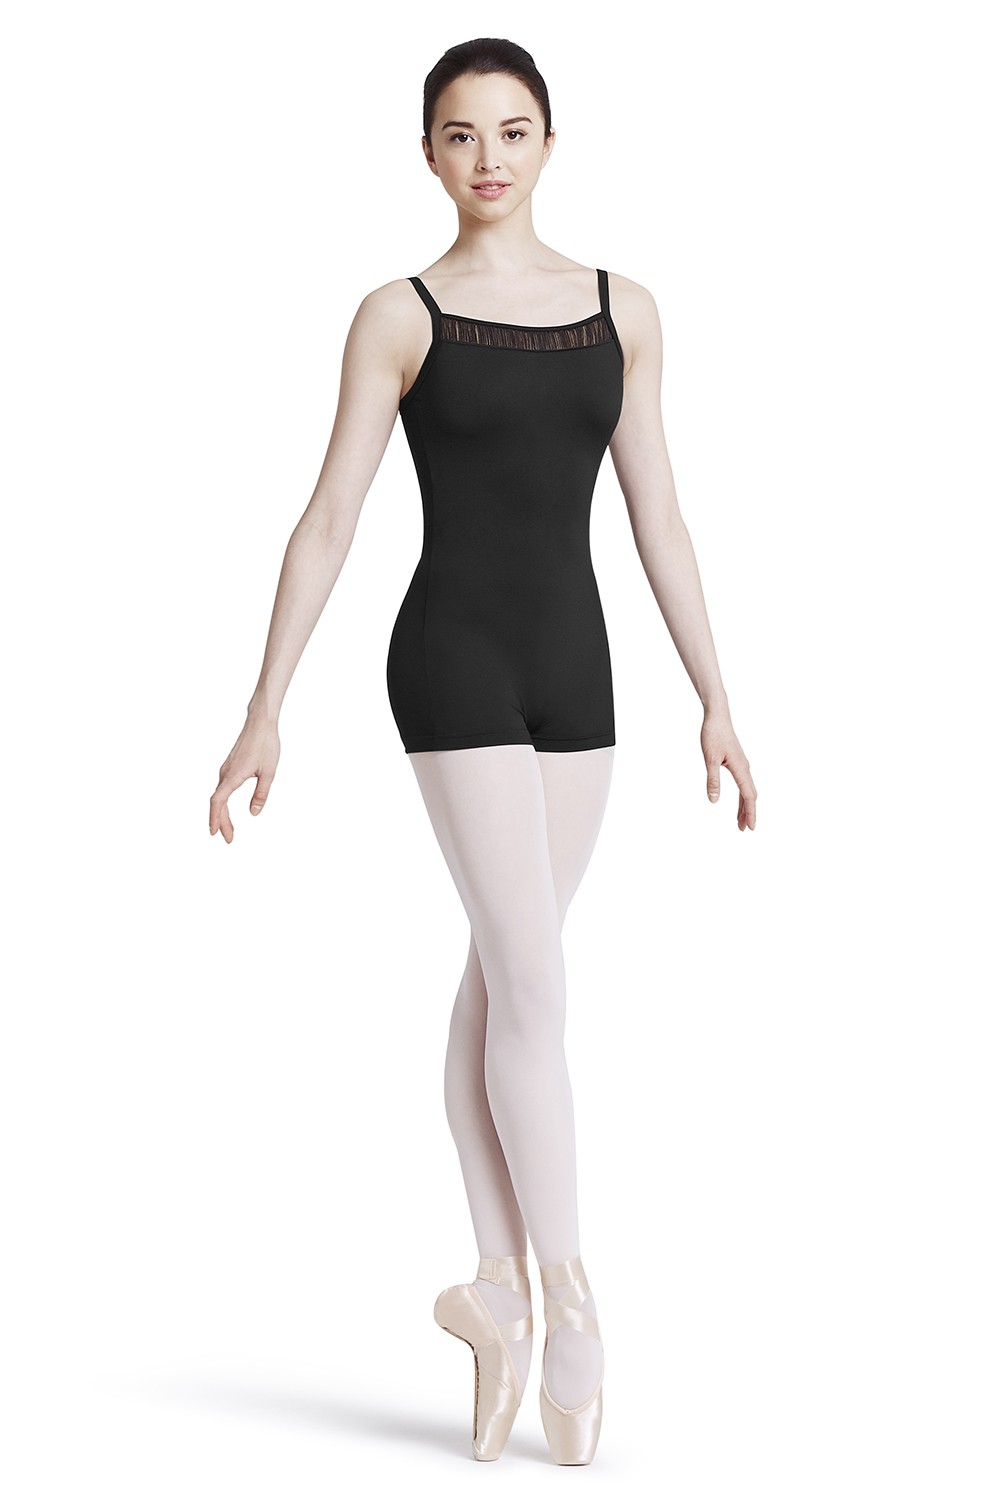 Wide Strap Camisole Unitard Women's Dance Leotards